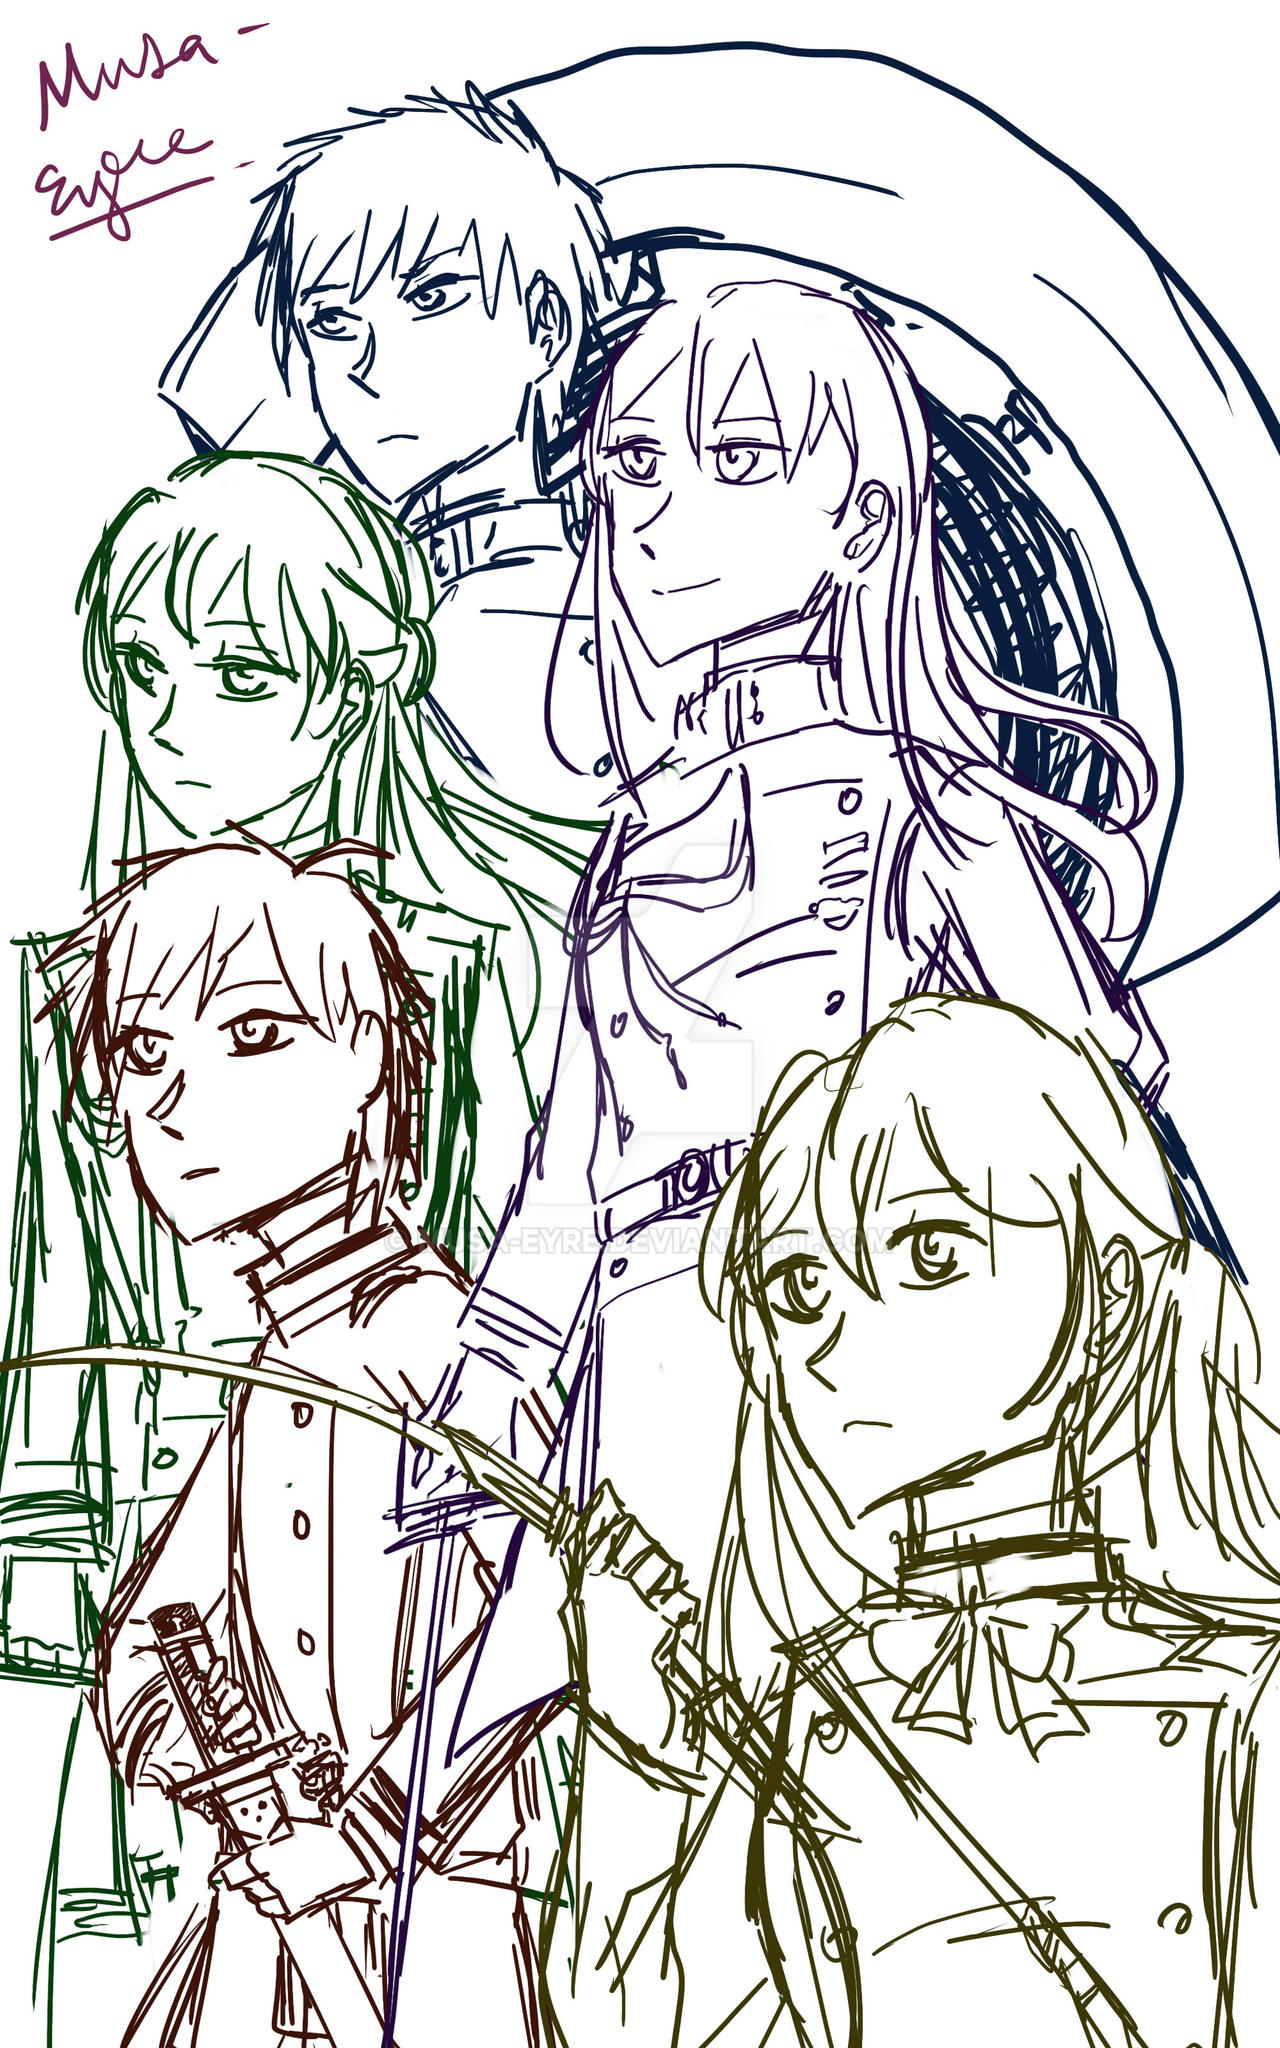 Miho Squad sketch by Musa-Eyre